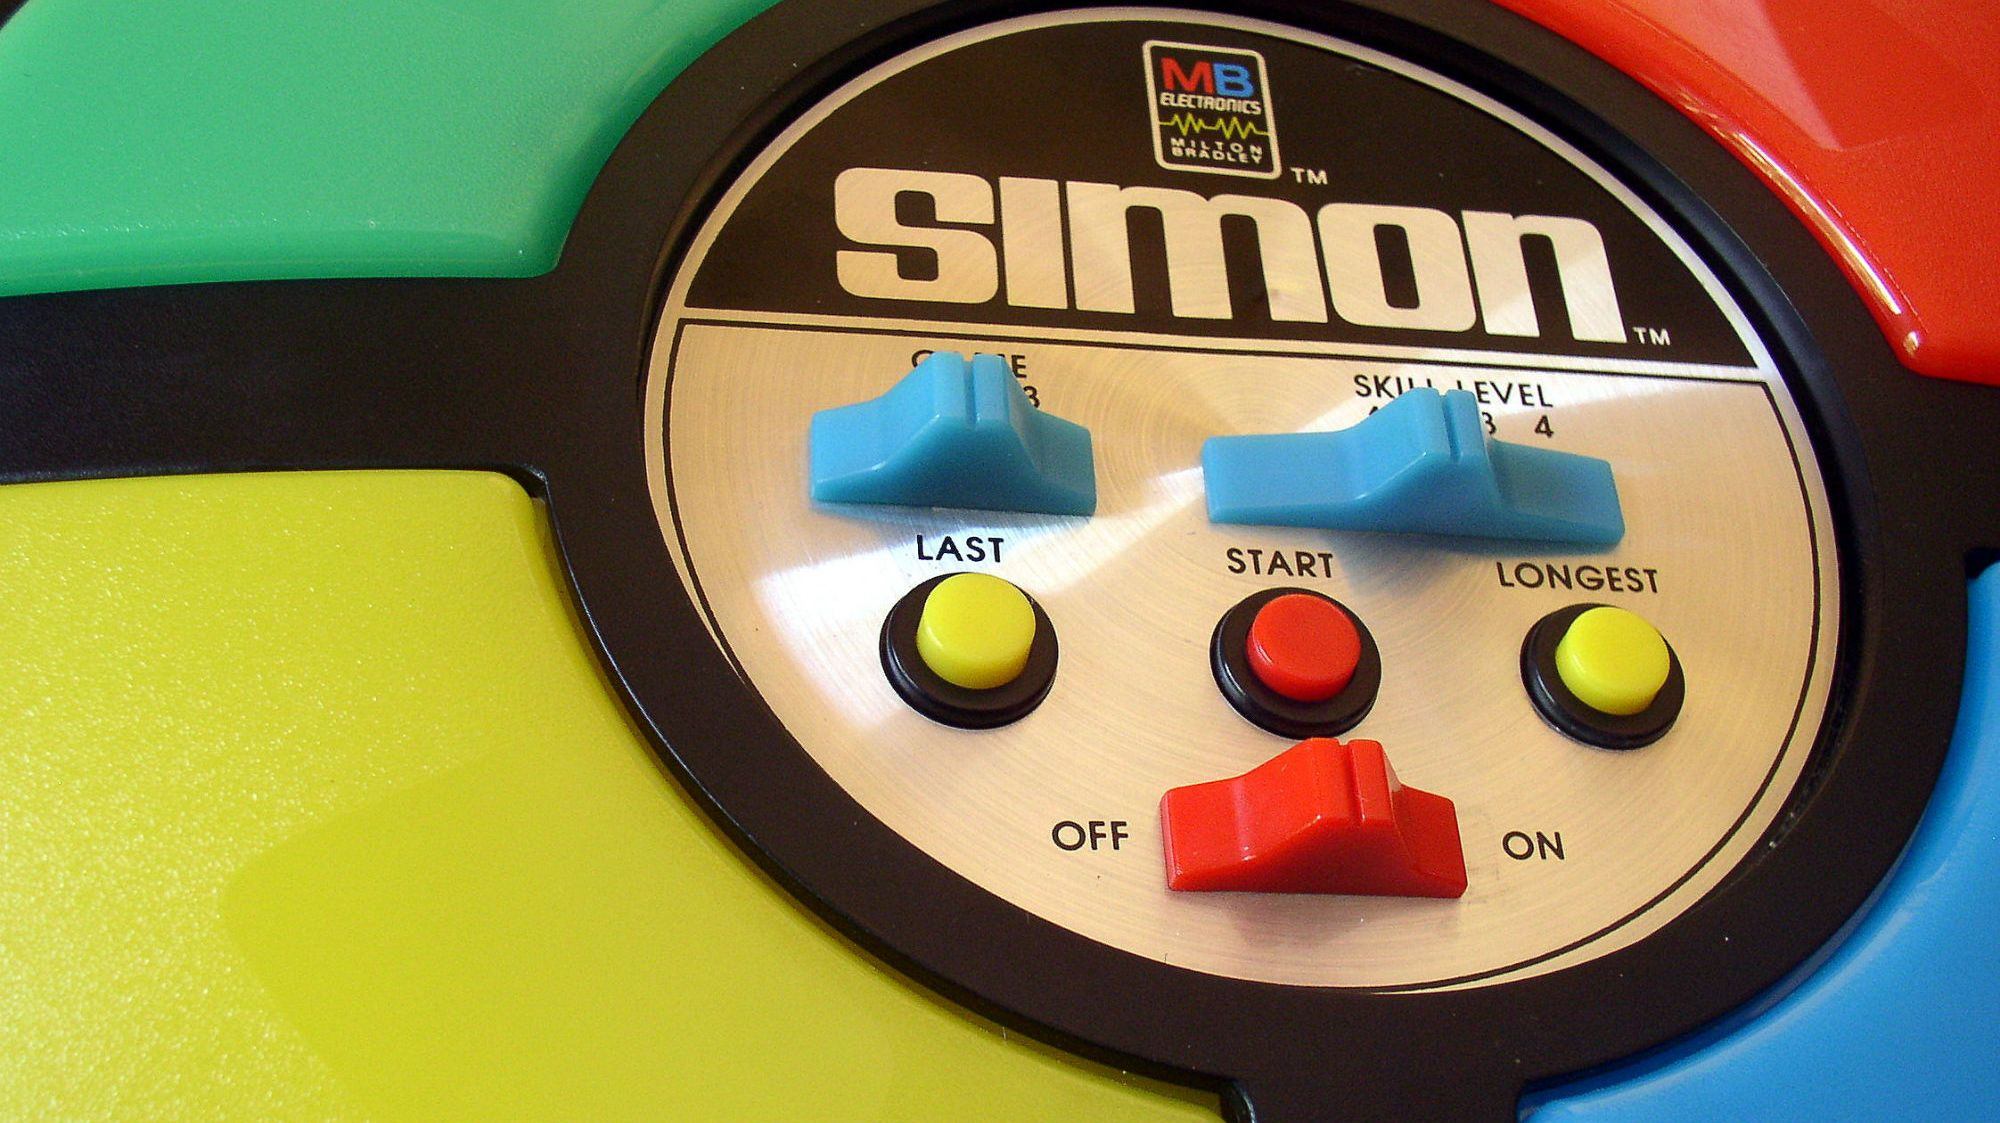 7 Things You Might Not Know About the Game Simon